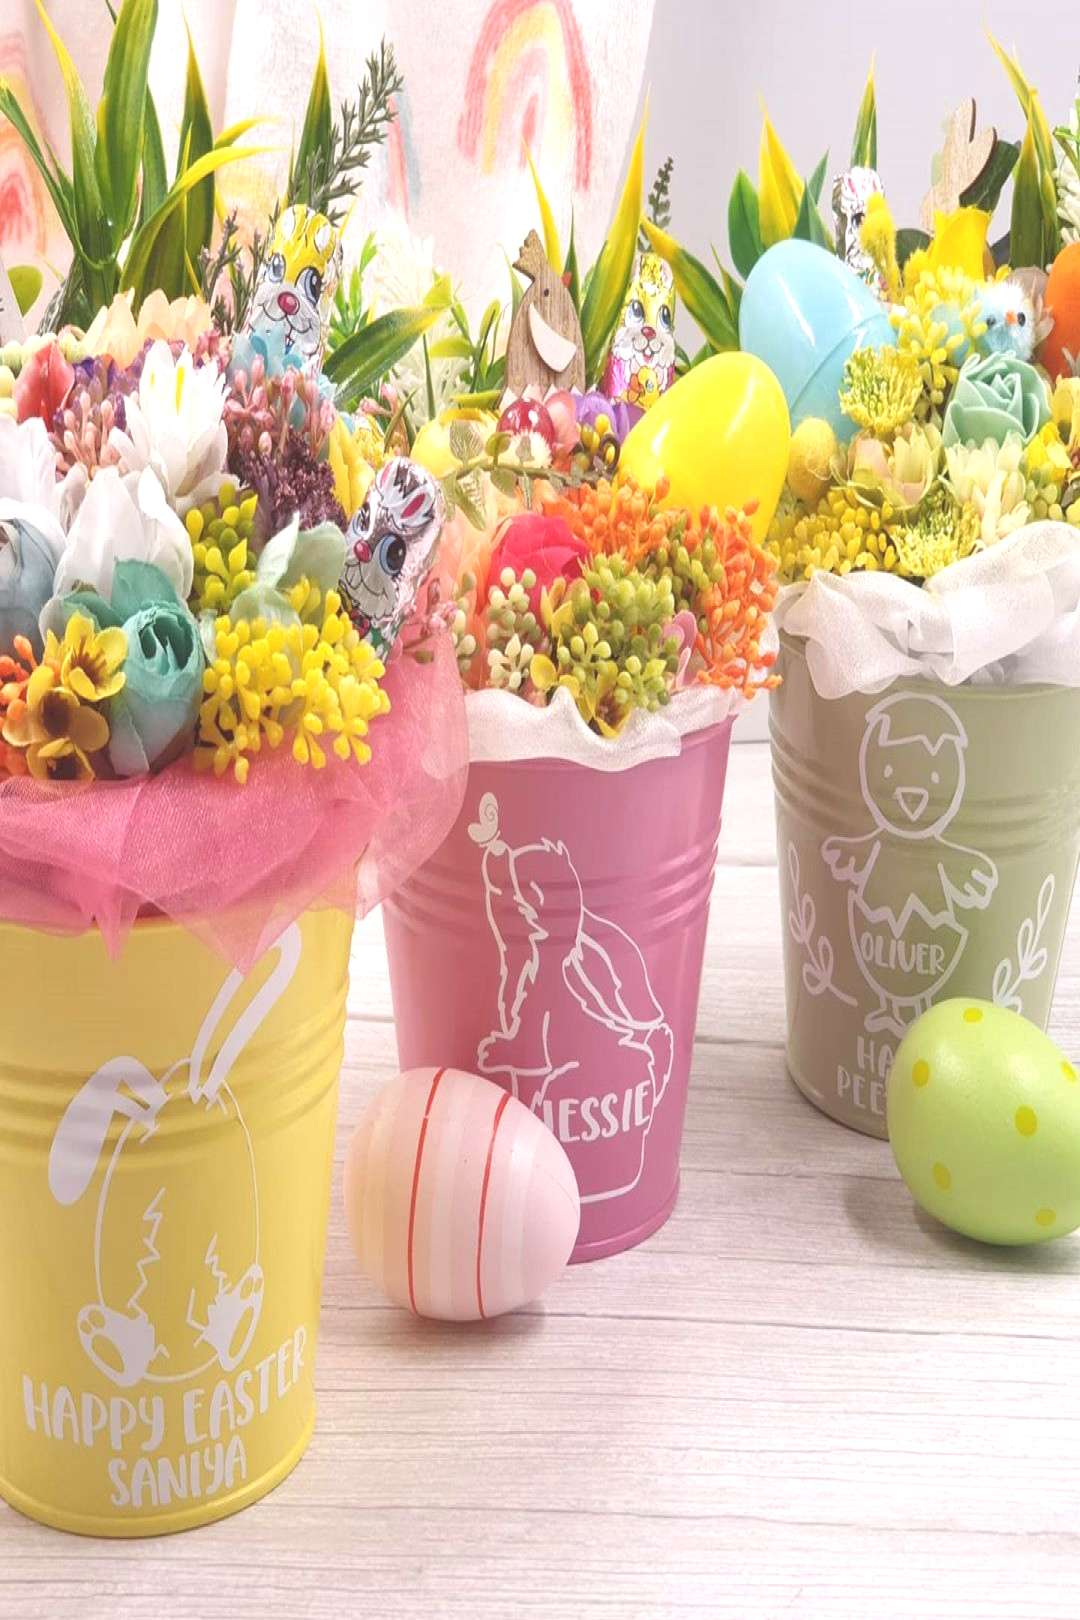 A little sneak at the Chocolate Easter Buckets that will be avail